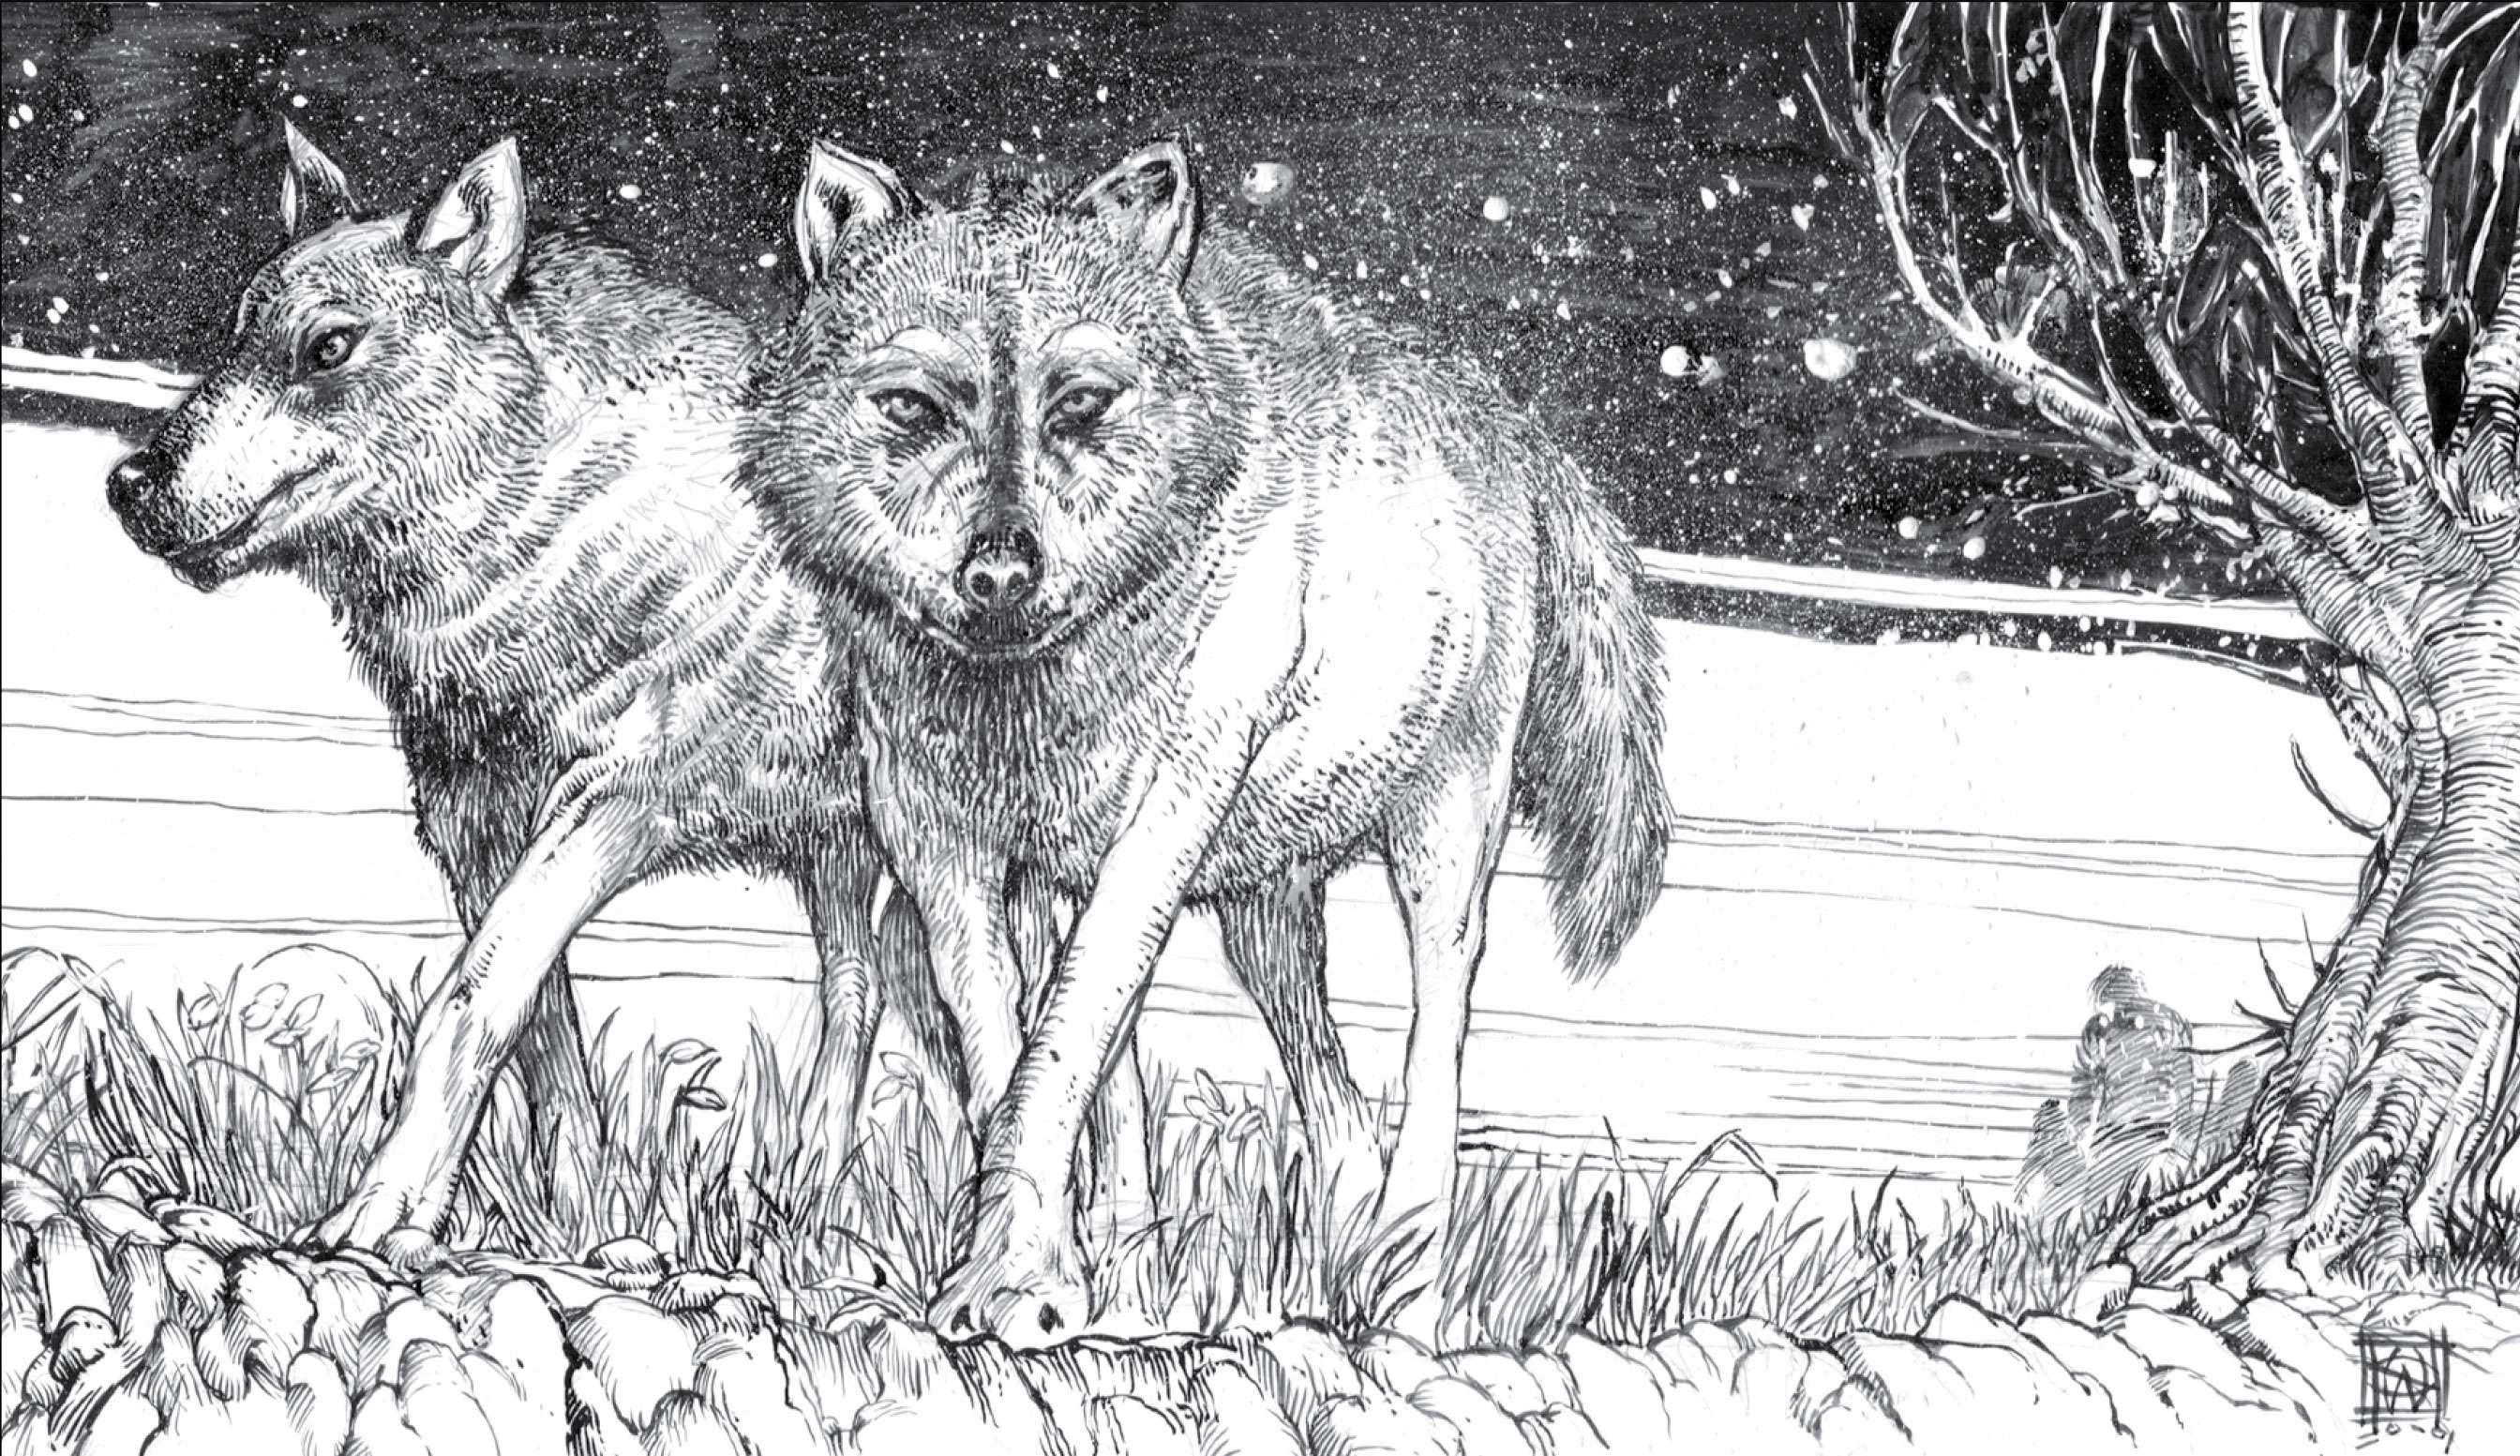 William Simpson drawing of 'Game of Thrones' direwolves